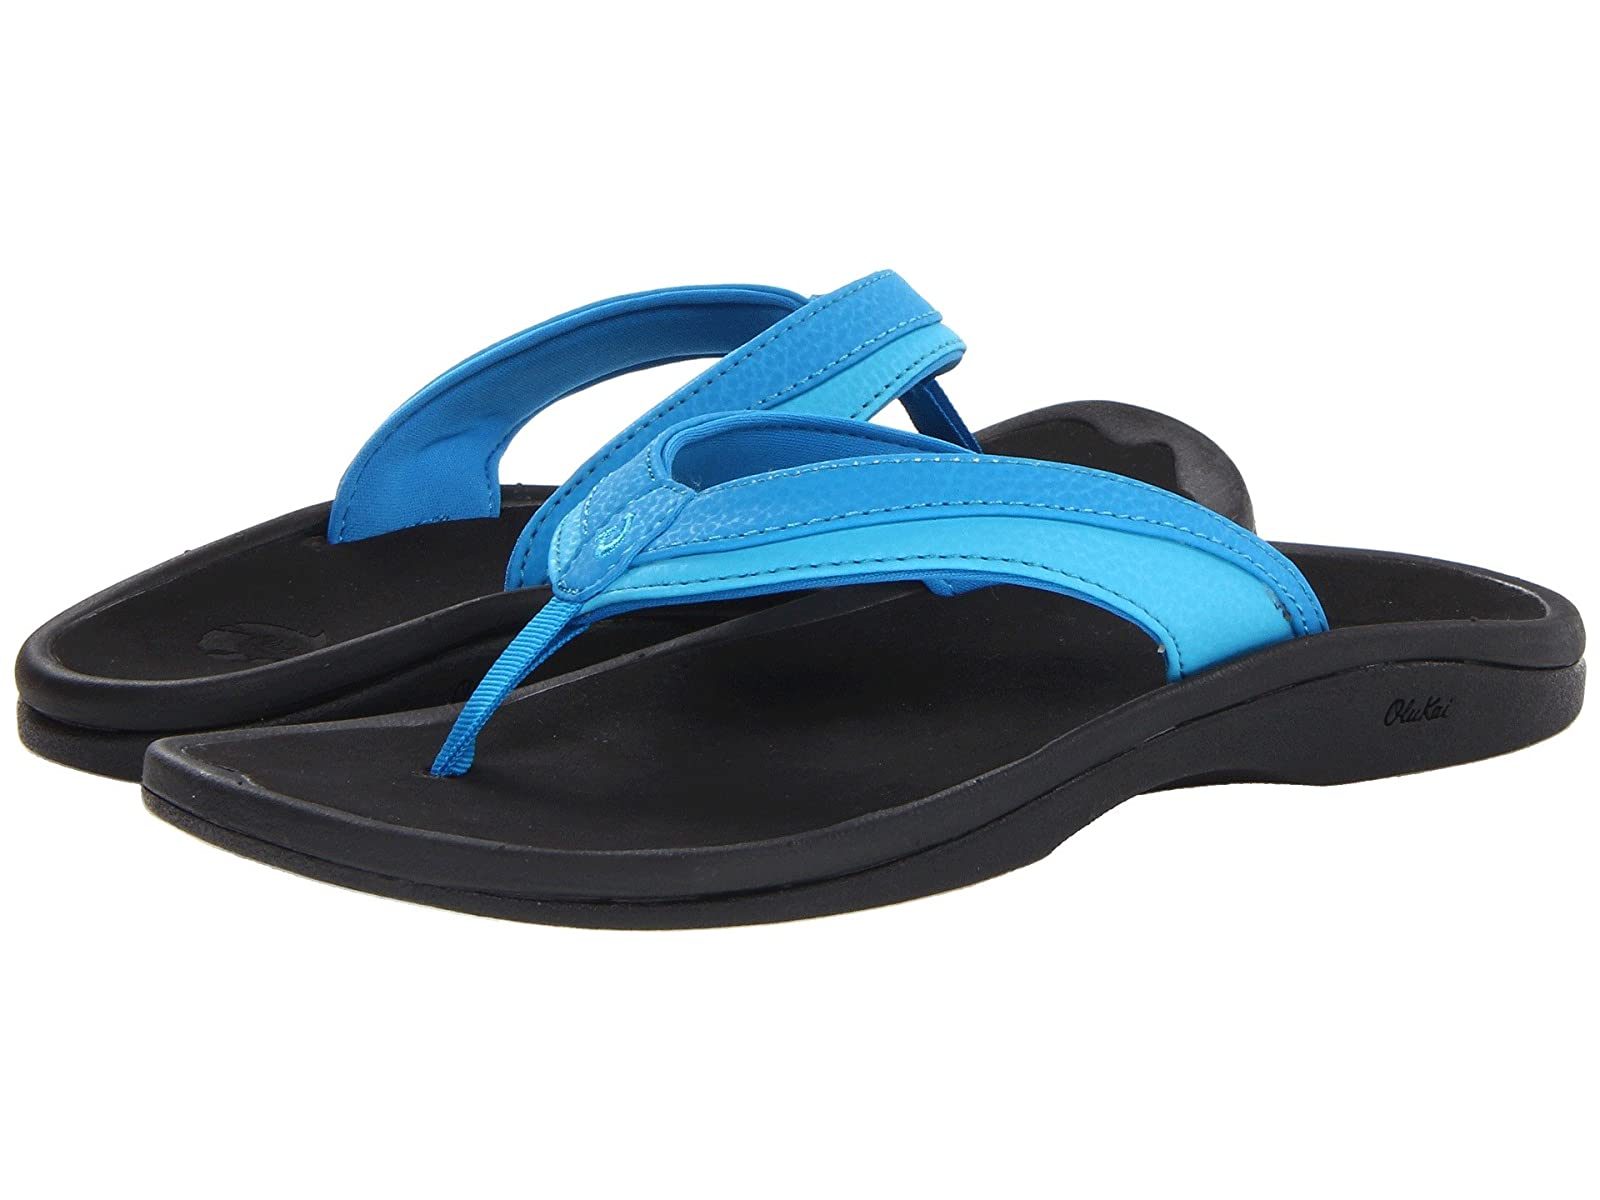 OluKai Ohana WAtmospheric grades have affordable shoes